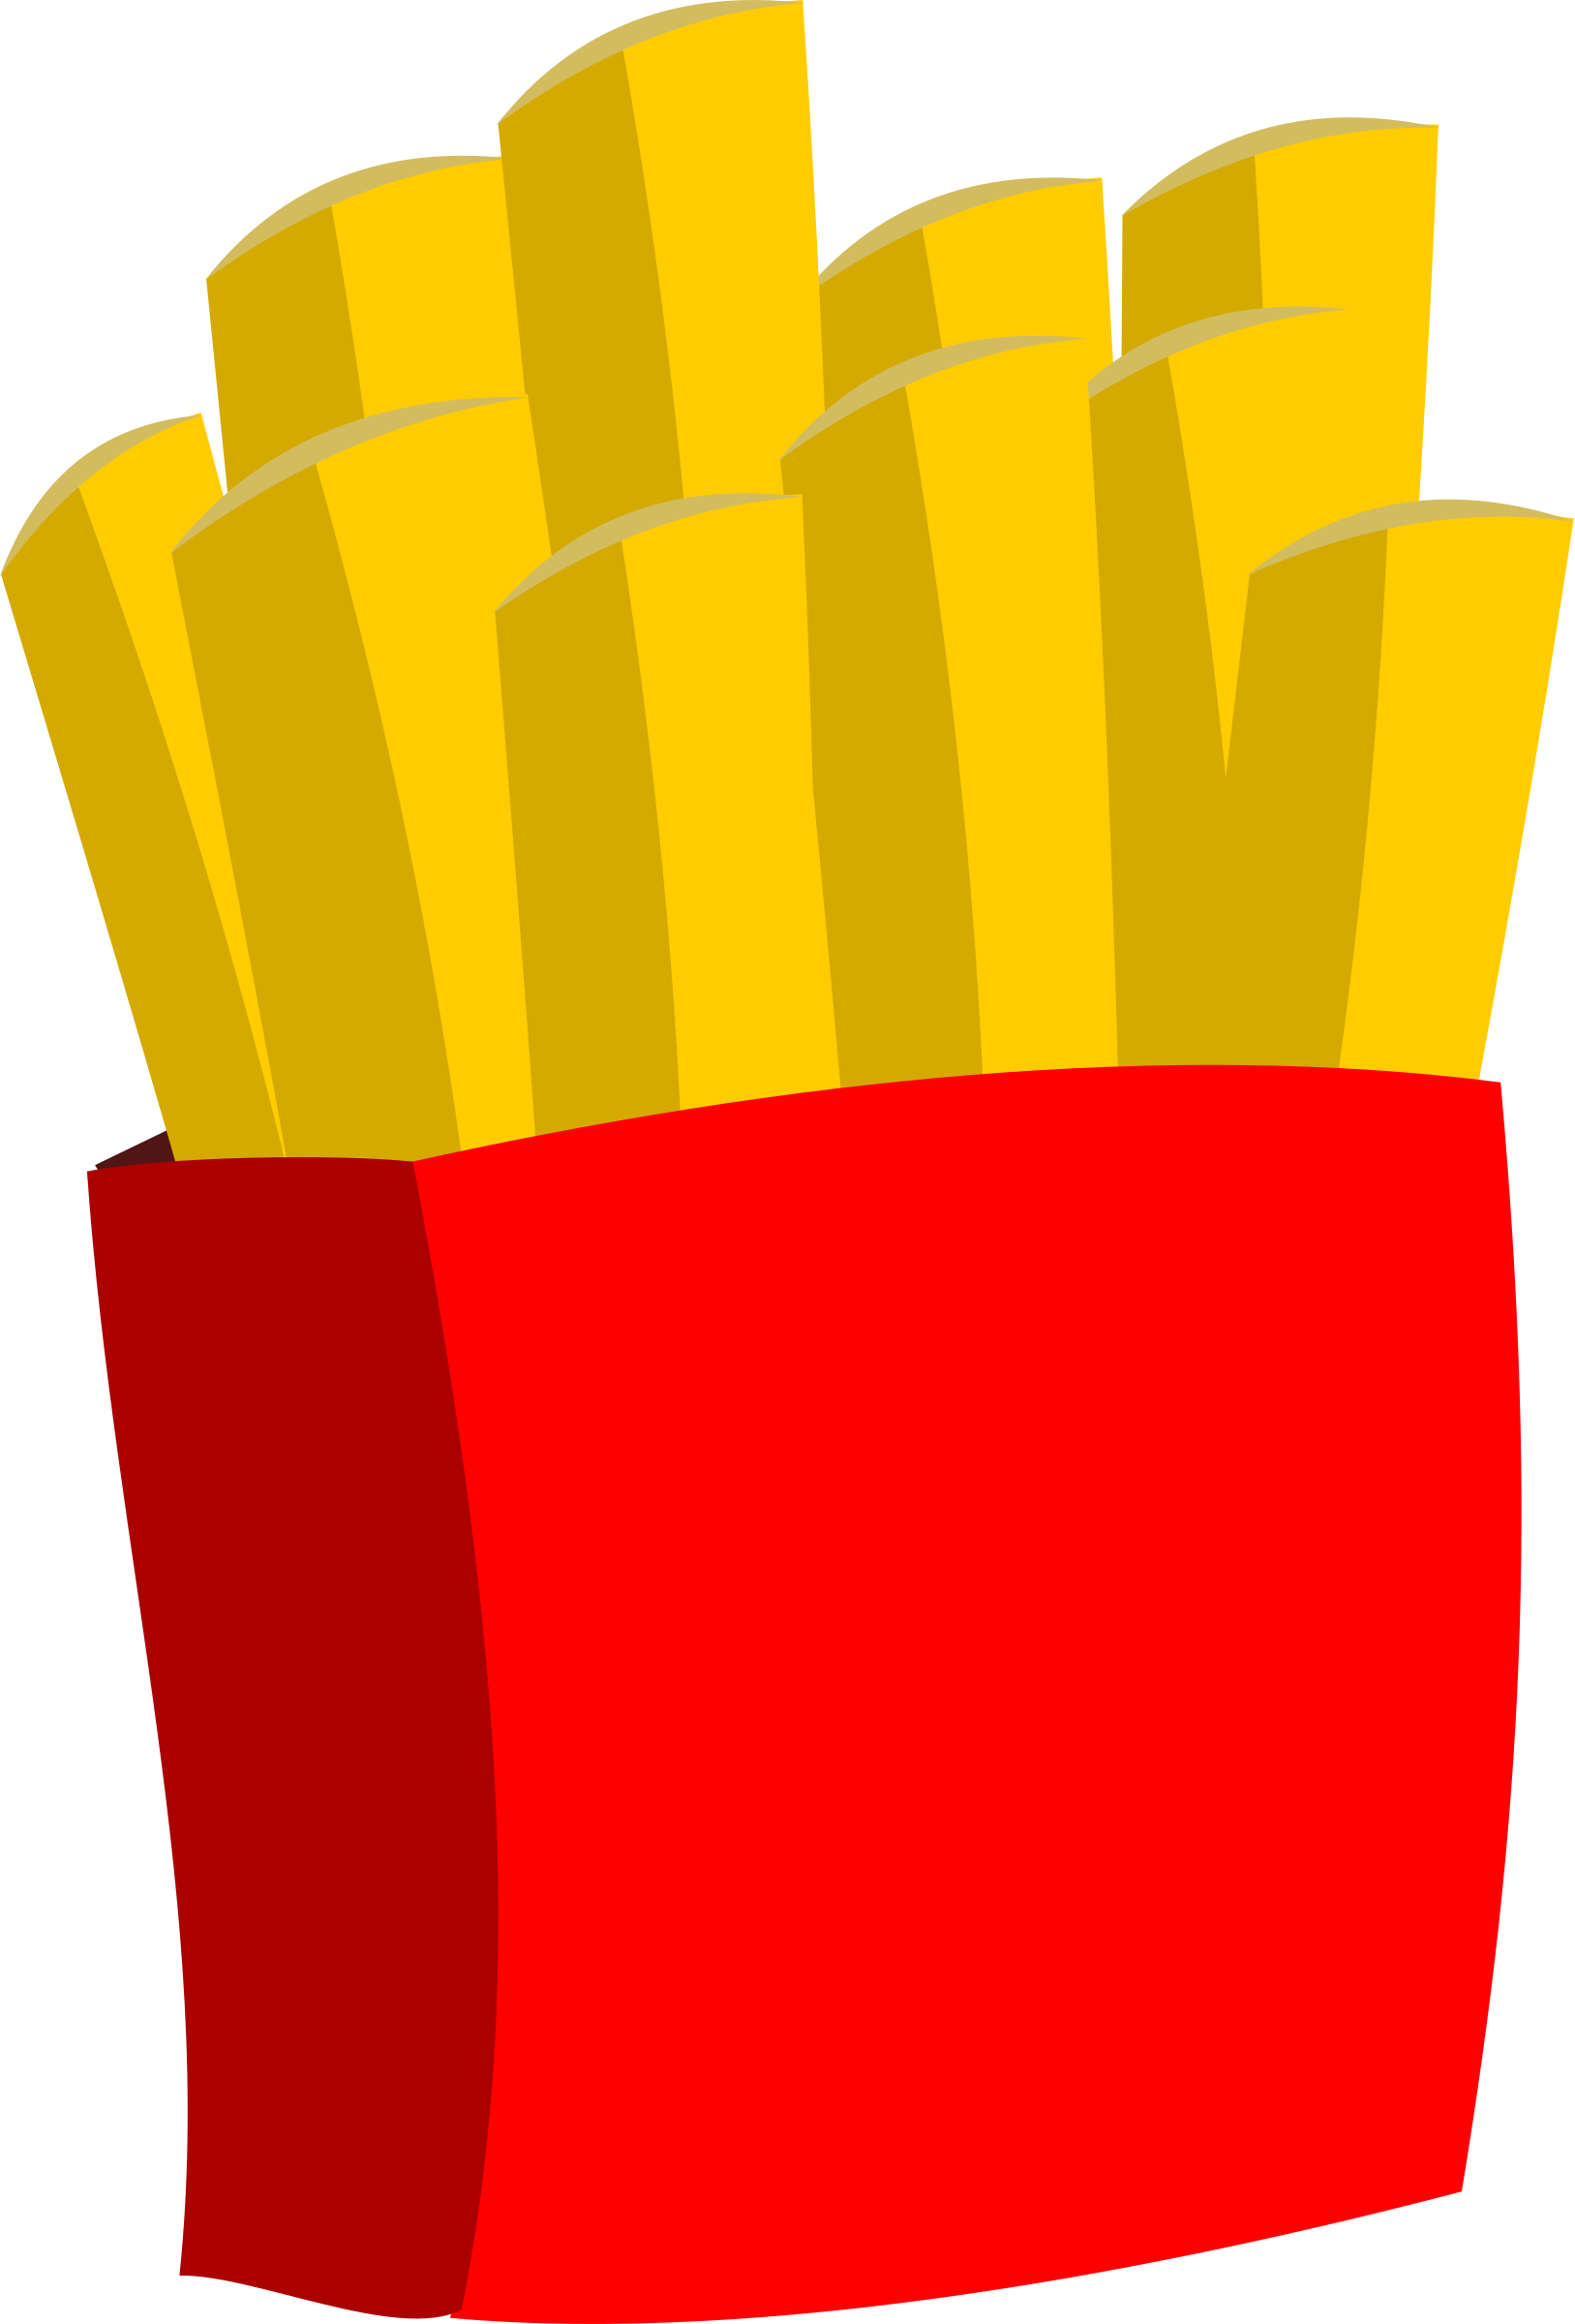 Hot big image. Chips clipart png graphic